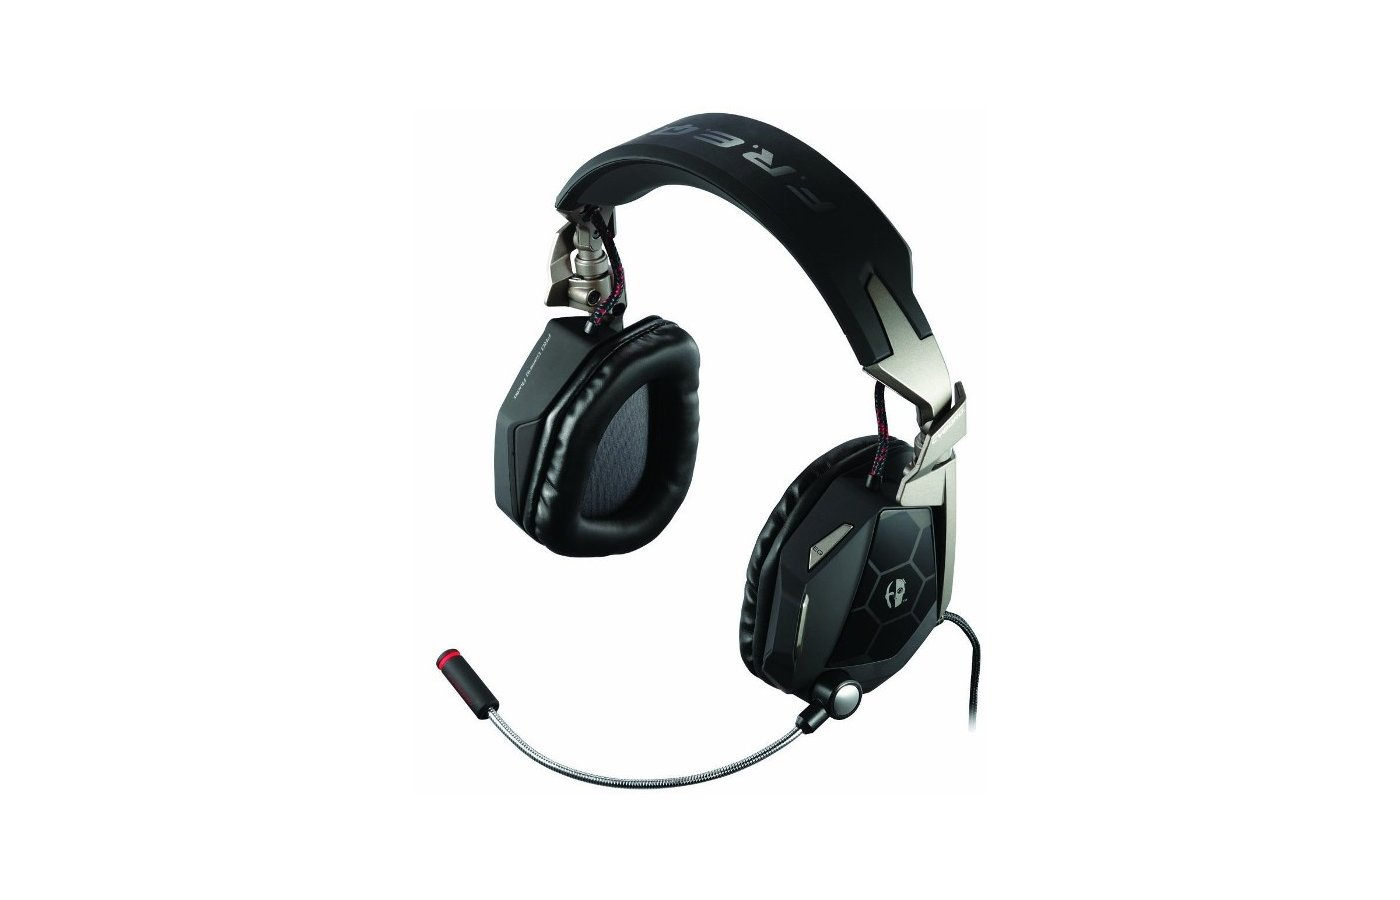 Игровые наушники проводные Saitek Mad Catz Cyborg F.R.E.Q. 5 Stereo Headset Mylar PET 50mm